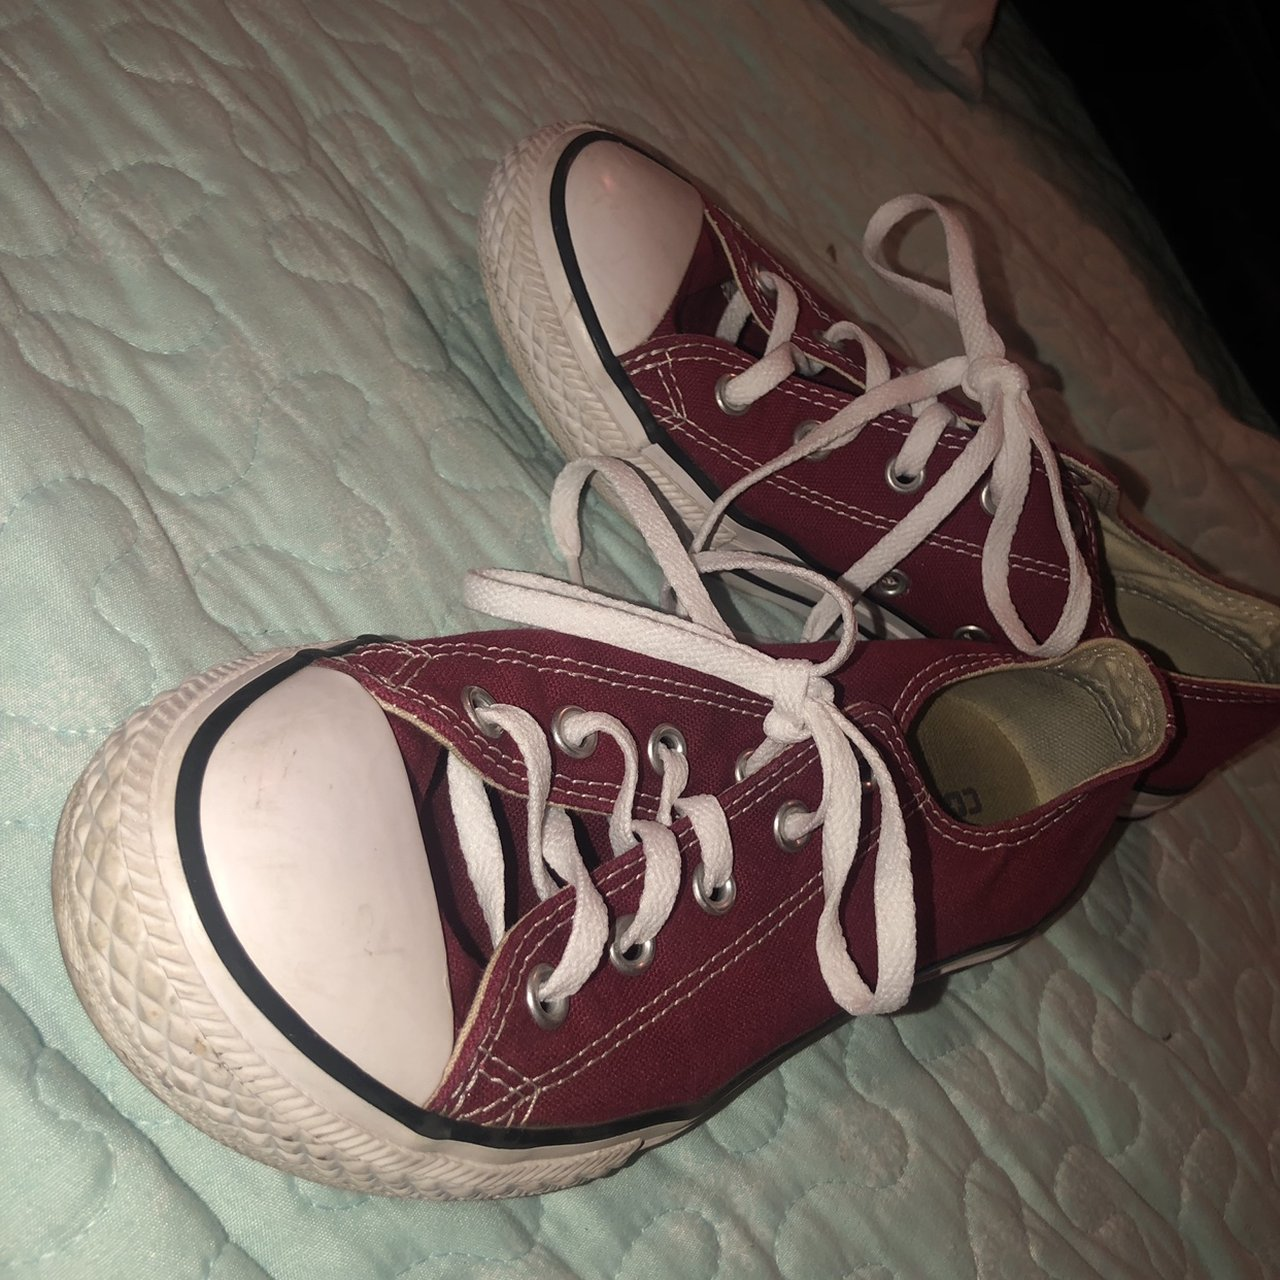 cc52a911495 Burgundy low top converse size 3 in kids hardly worn in new - Depop